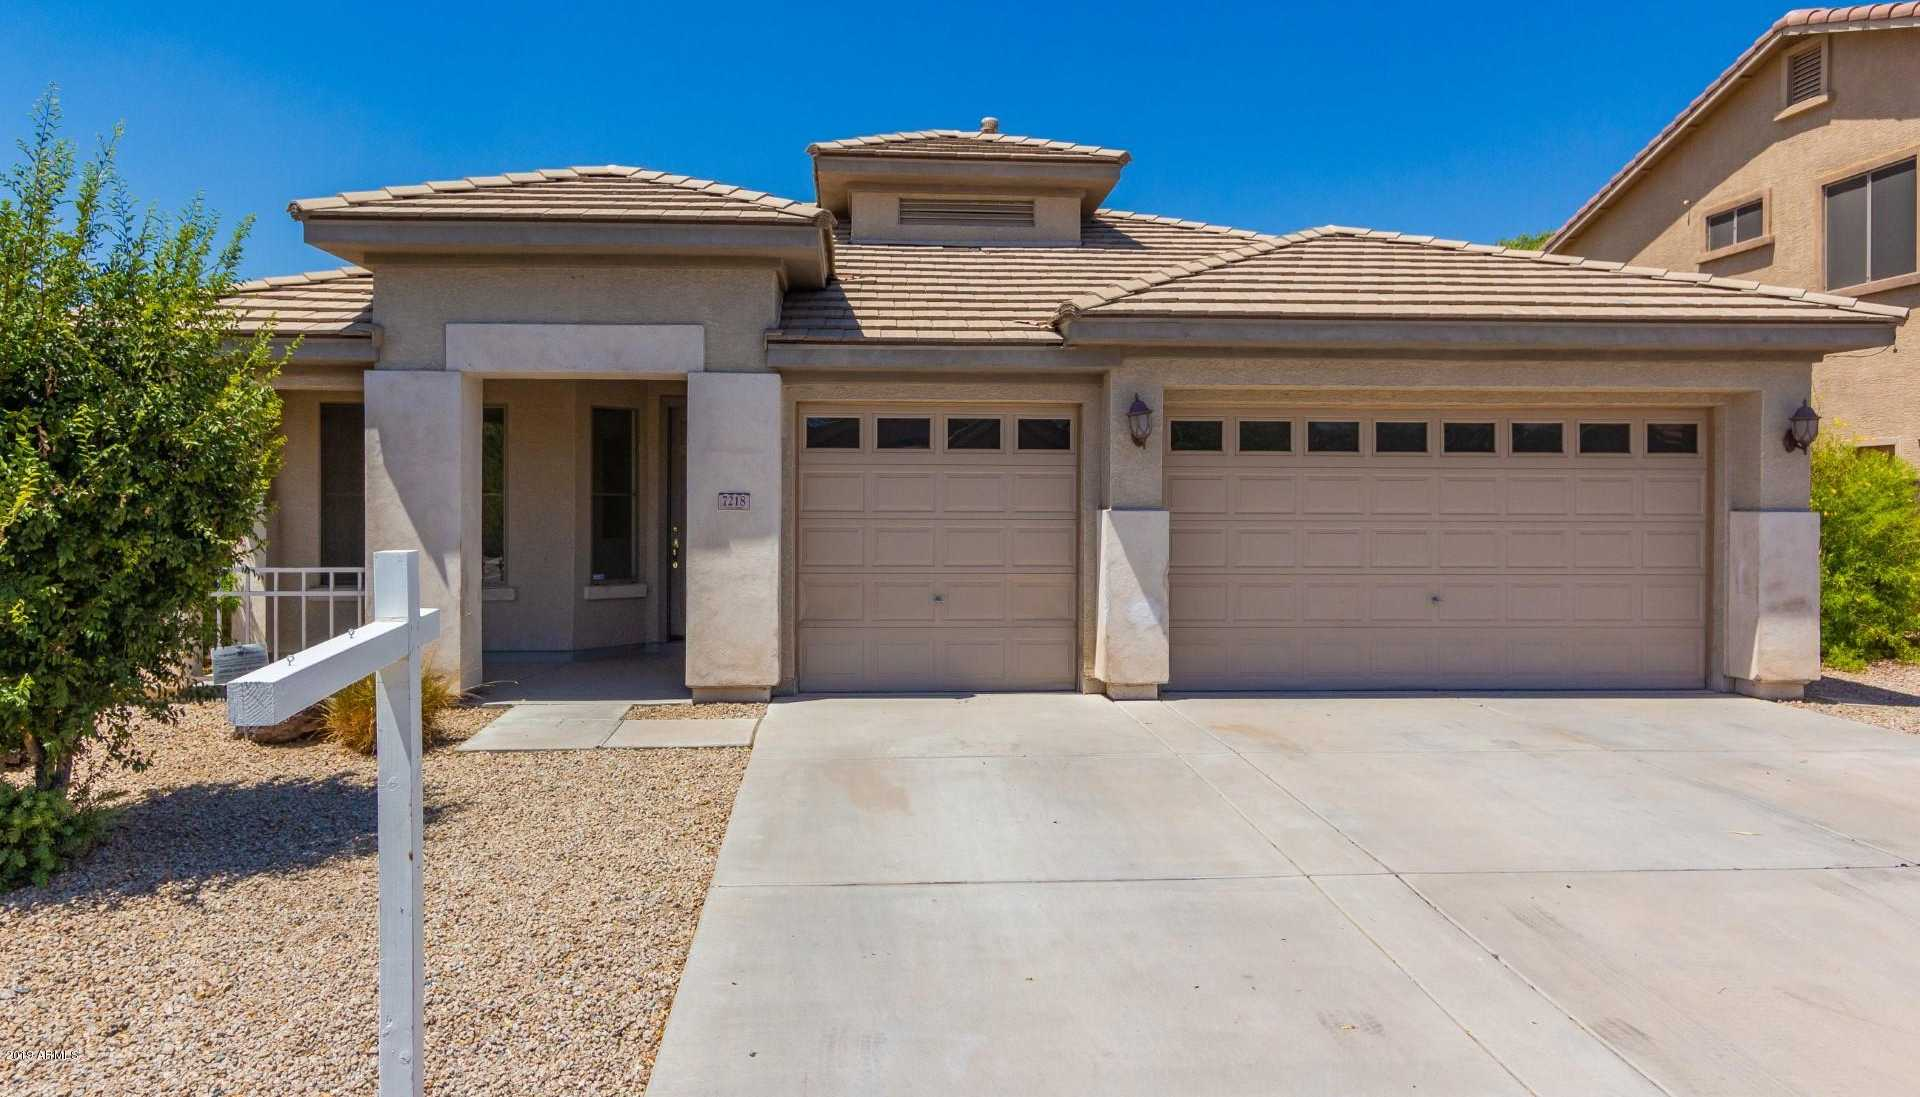 $319,900 - 3Br/2Ba - Home for Sale in Rovey Farm Estates South, Glendale